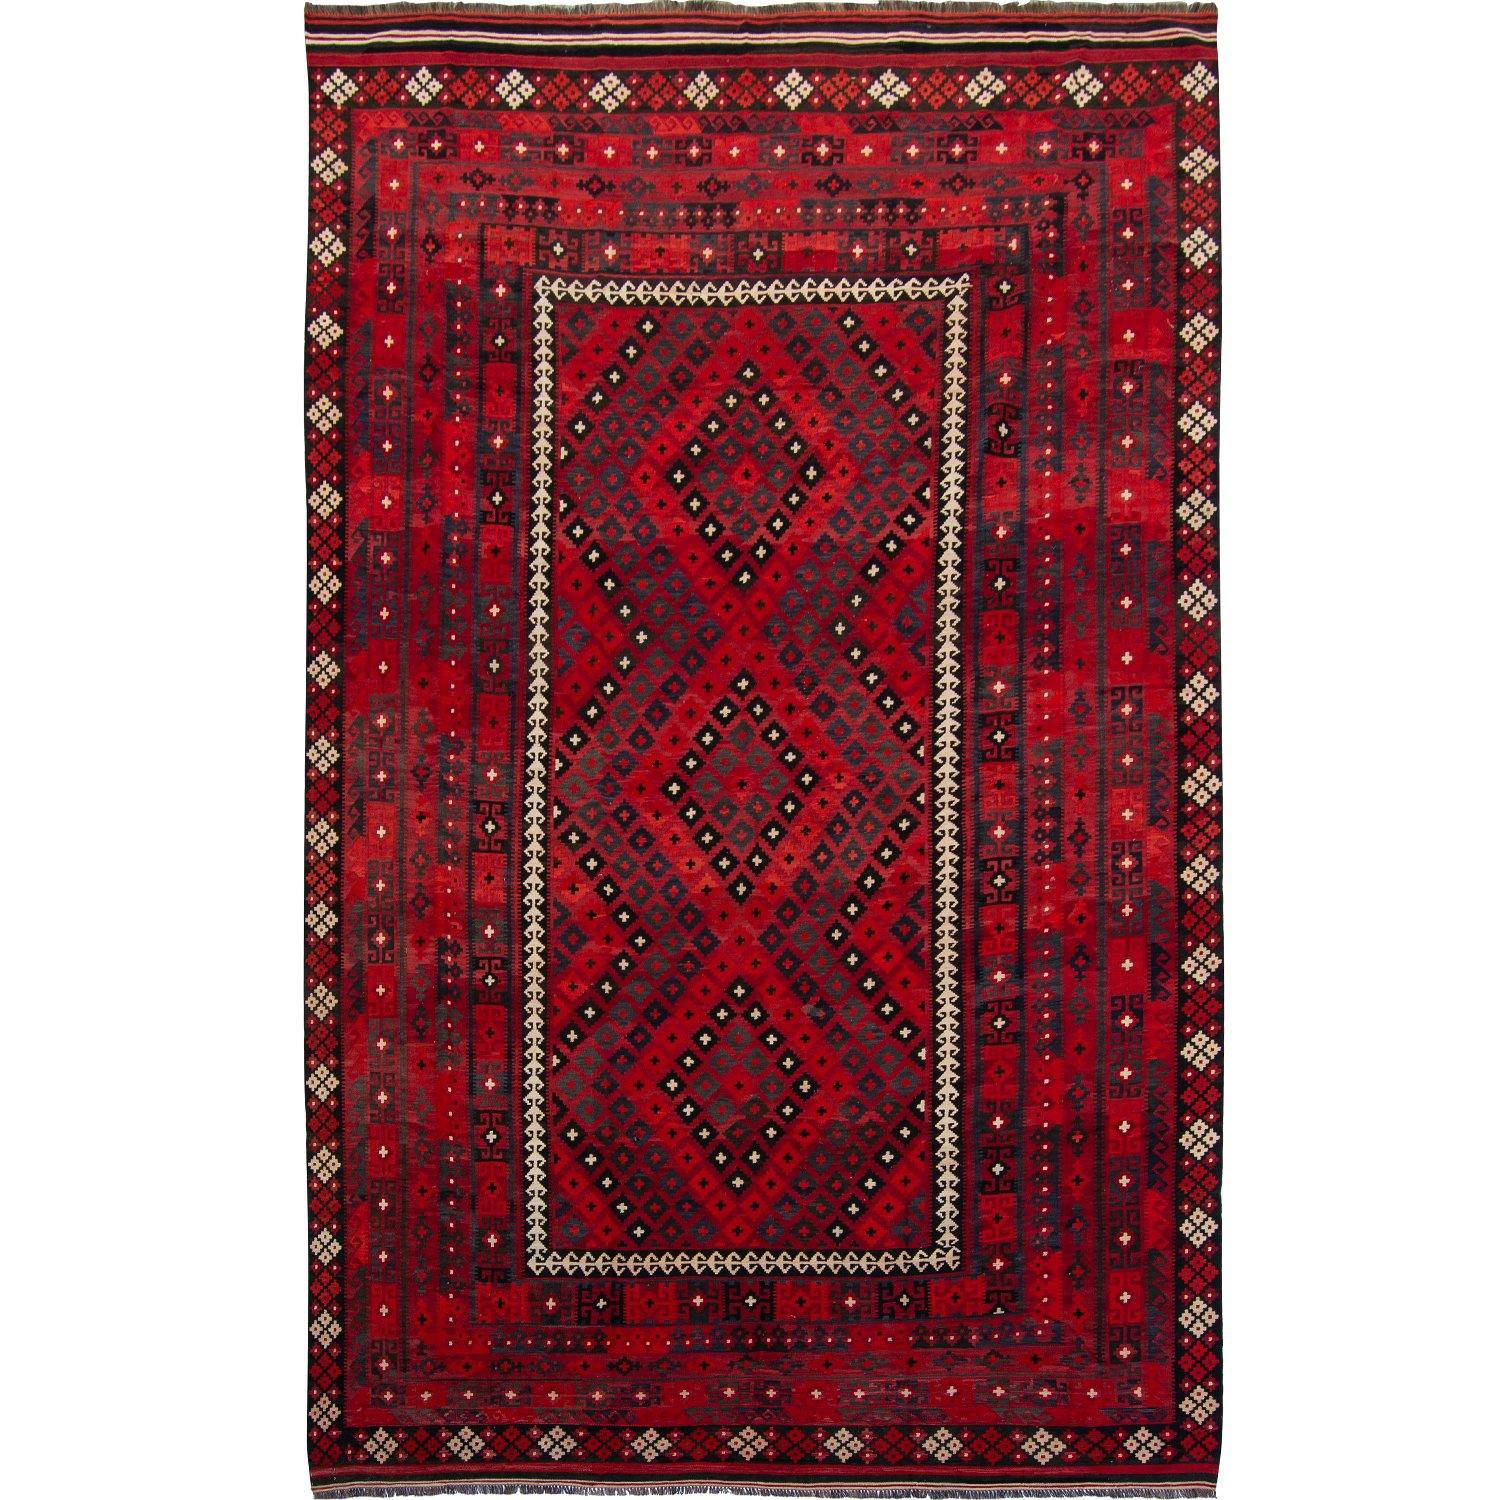 Hand-Woven 100% Wool Kilim Shiraz Rug 300cm x 485cm Persian-Rug | House-of-Haghi | NewMarket | Auckland | NZ | Handmade Persian Rugs | Hand Knotted Persian Rugs